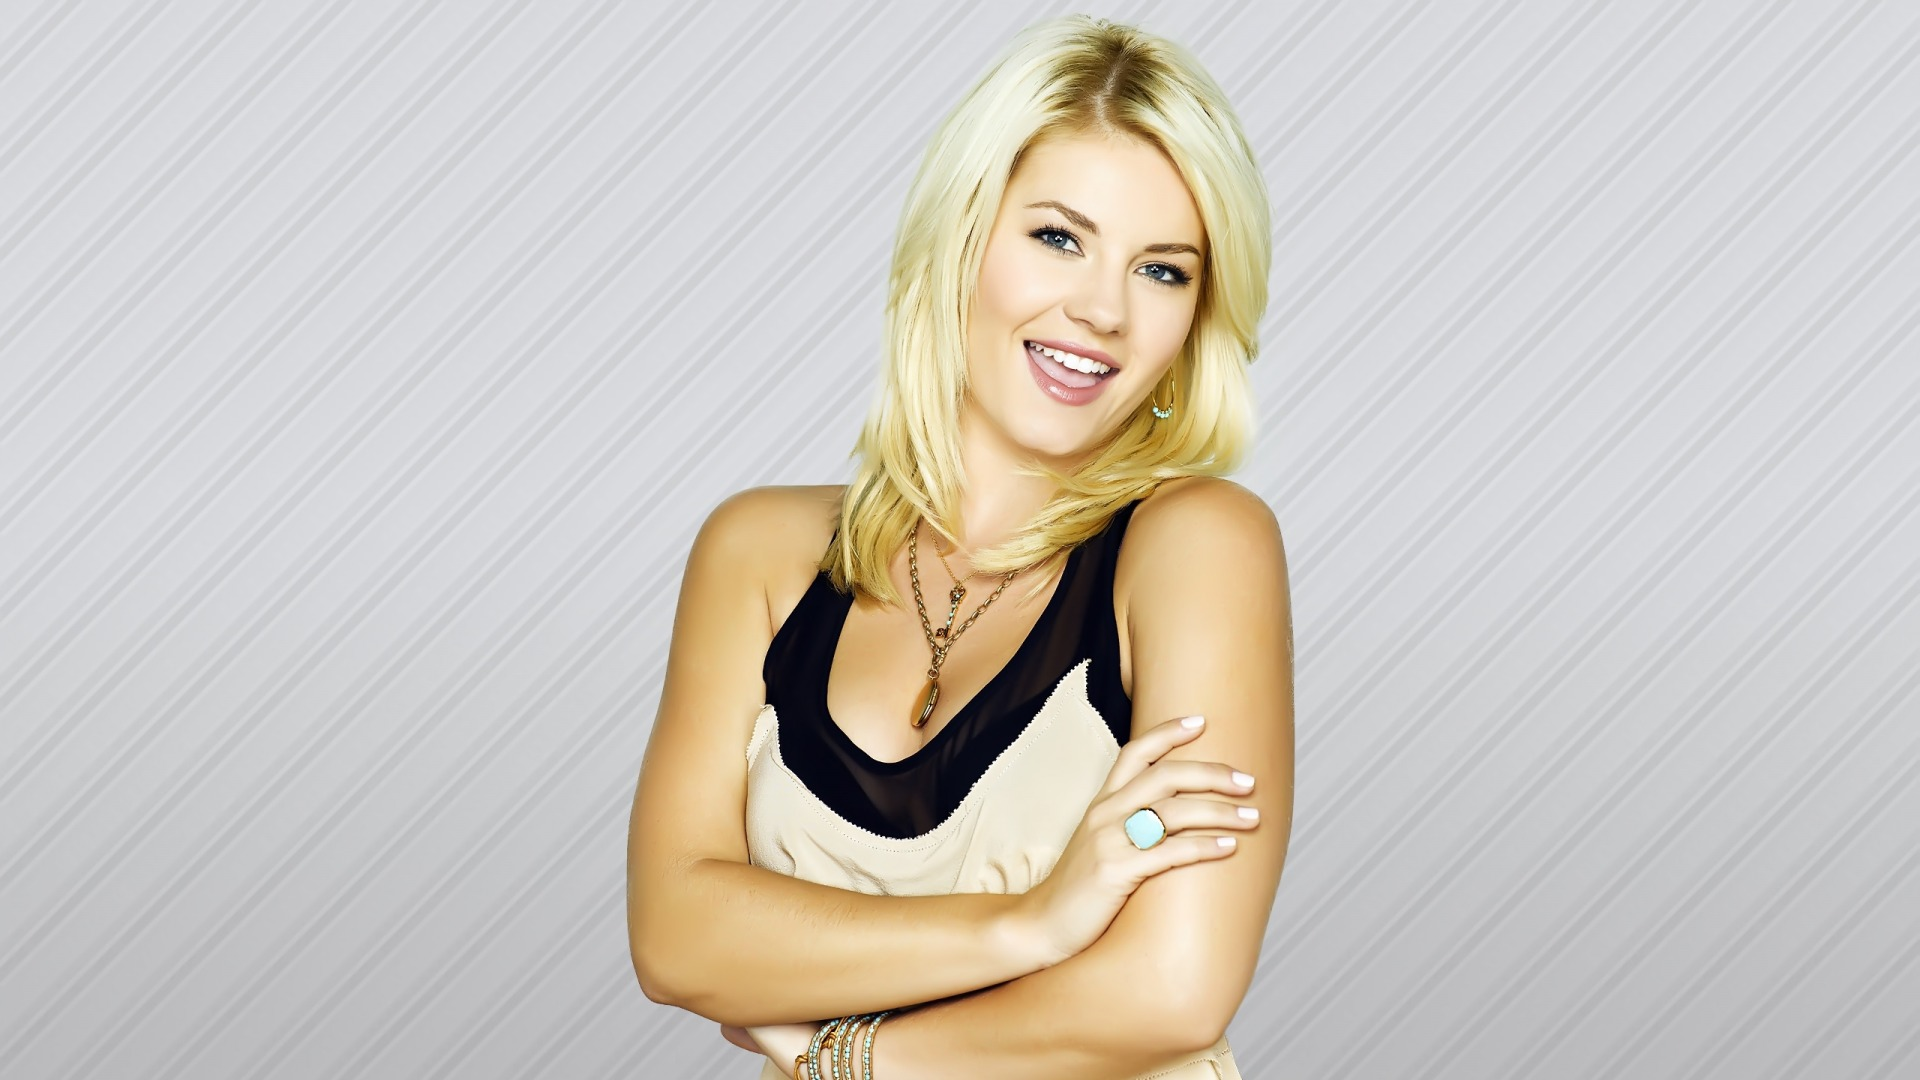 exclusive widescreen elisha cuthbert picture download